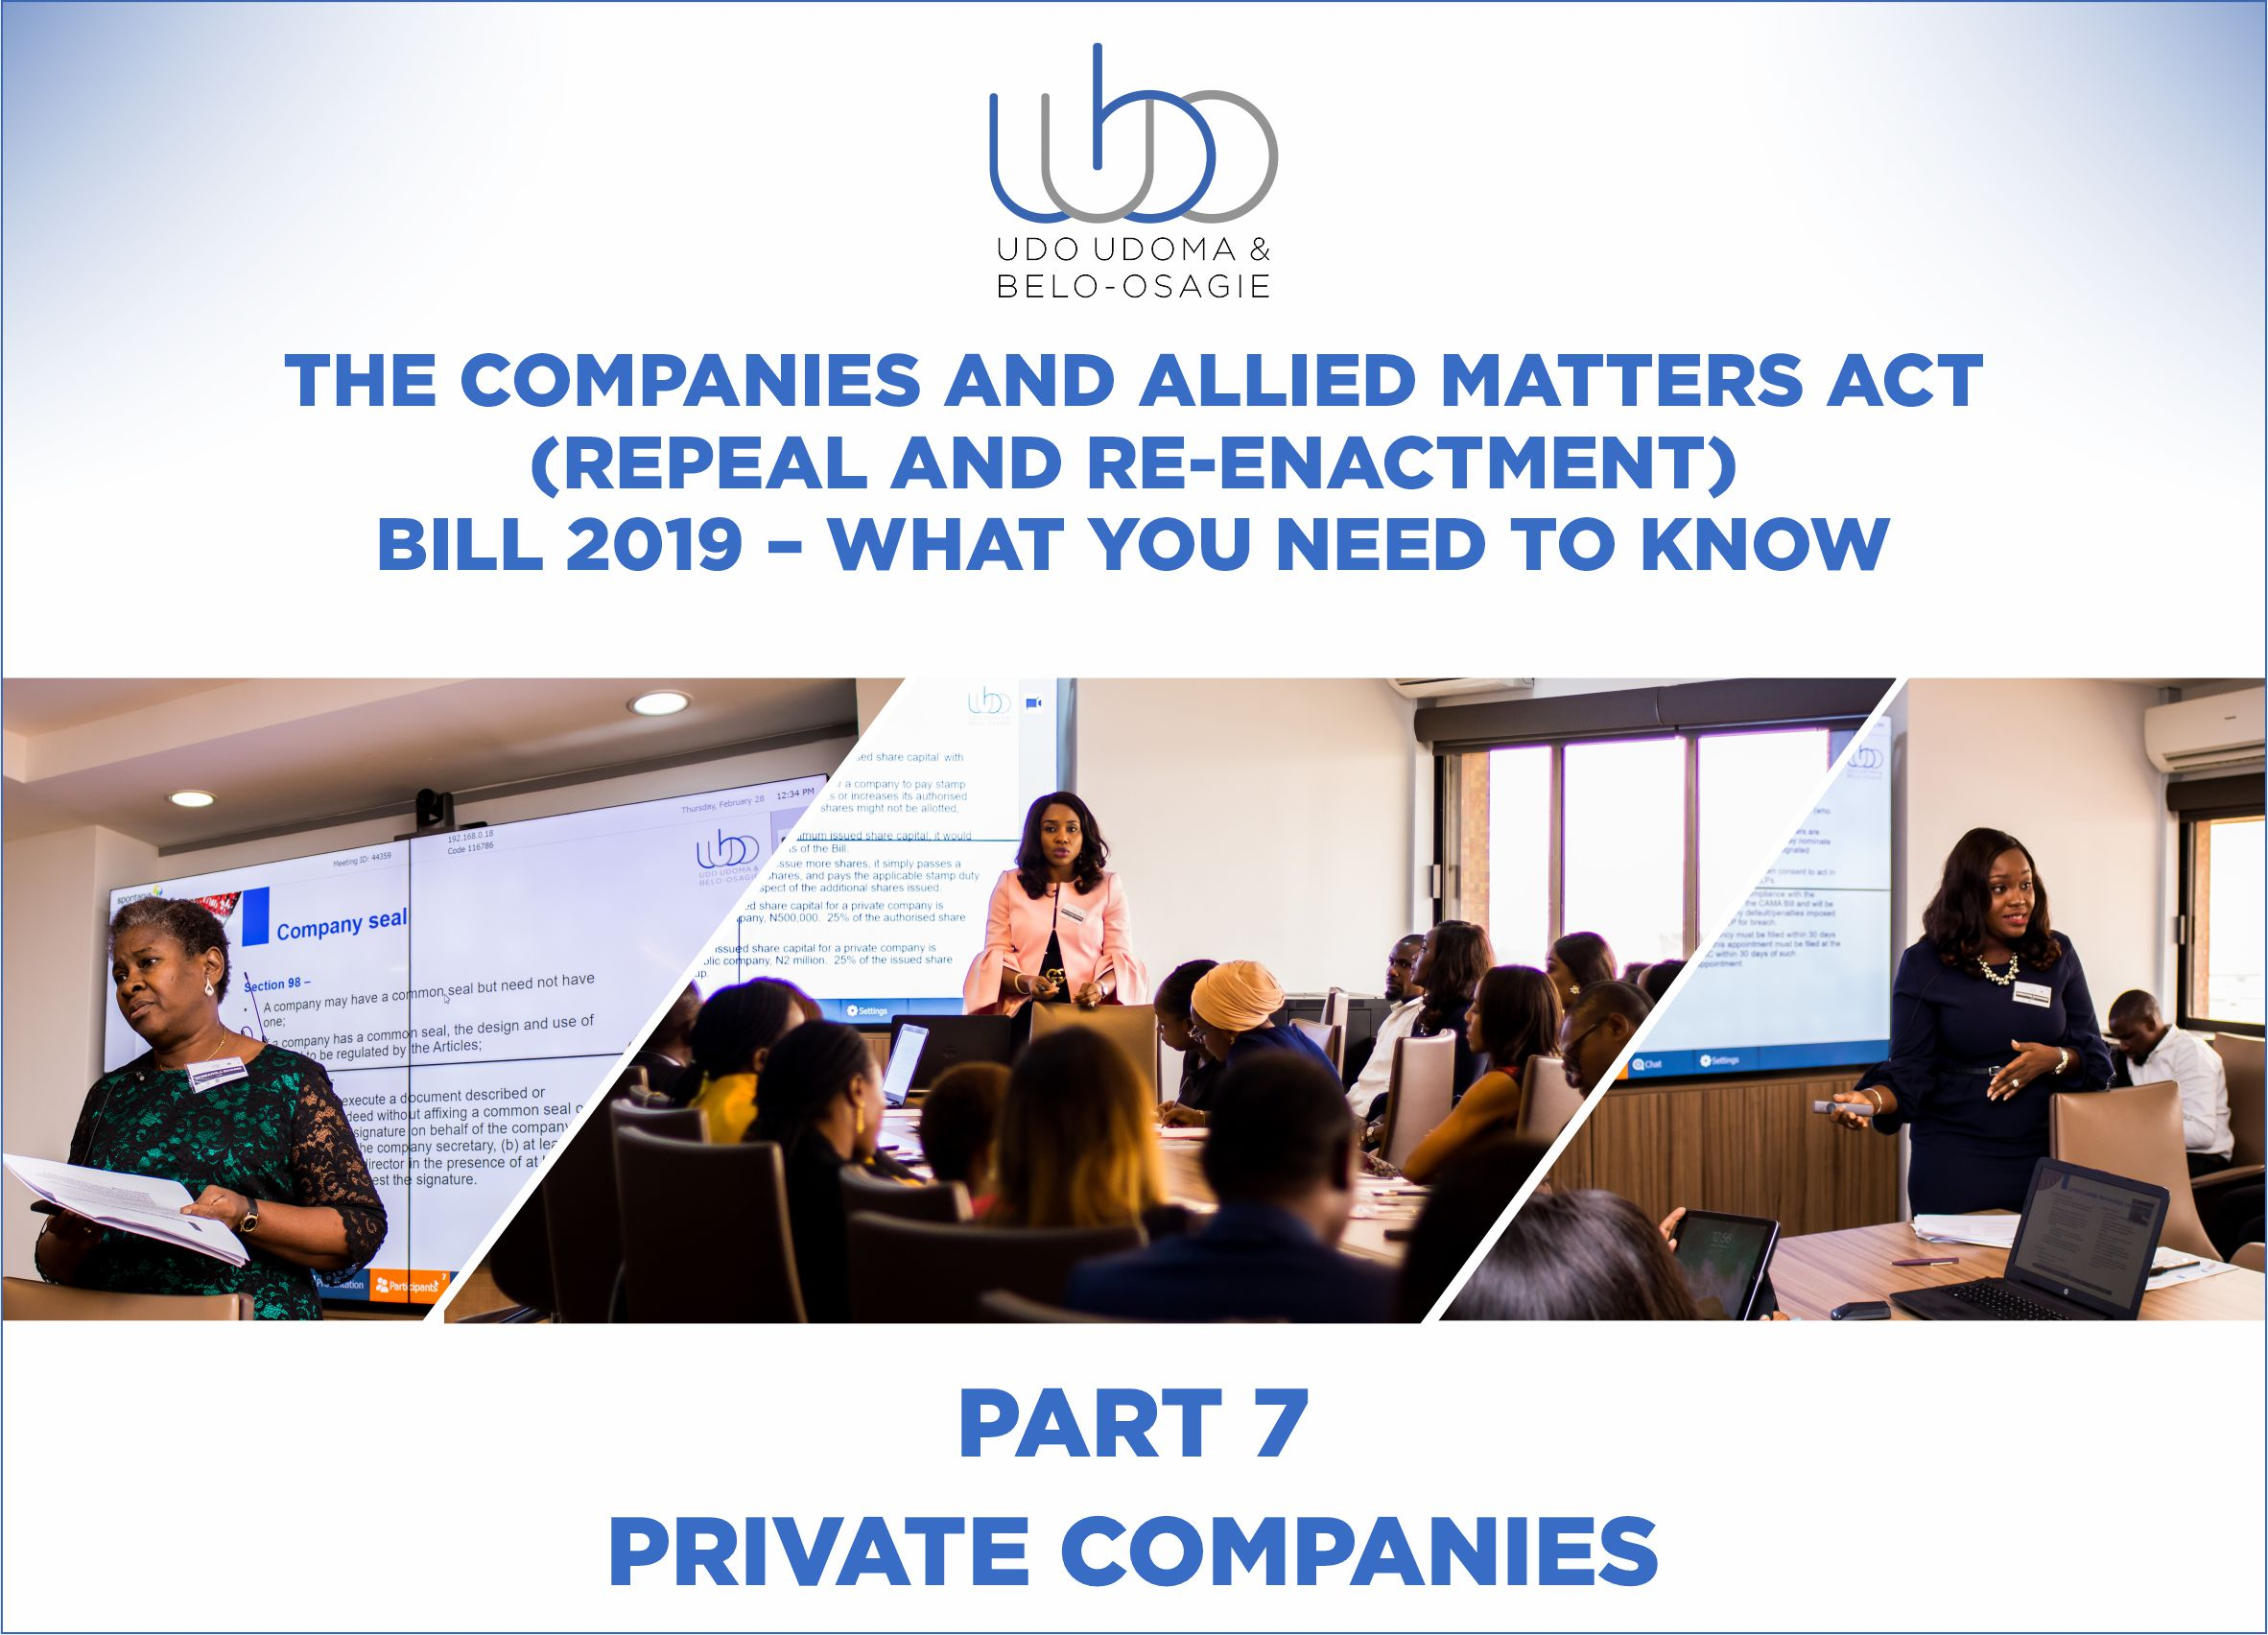 THE COMPANIES AND ALLIED MATTERS (REPEAL AND RE-ENACTMENT BILL) 2018 - PART 7